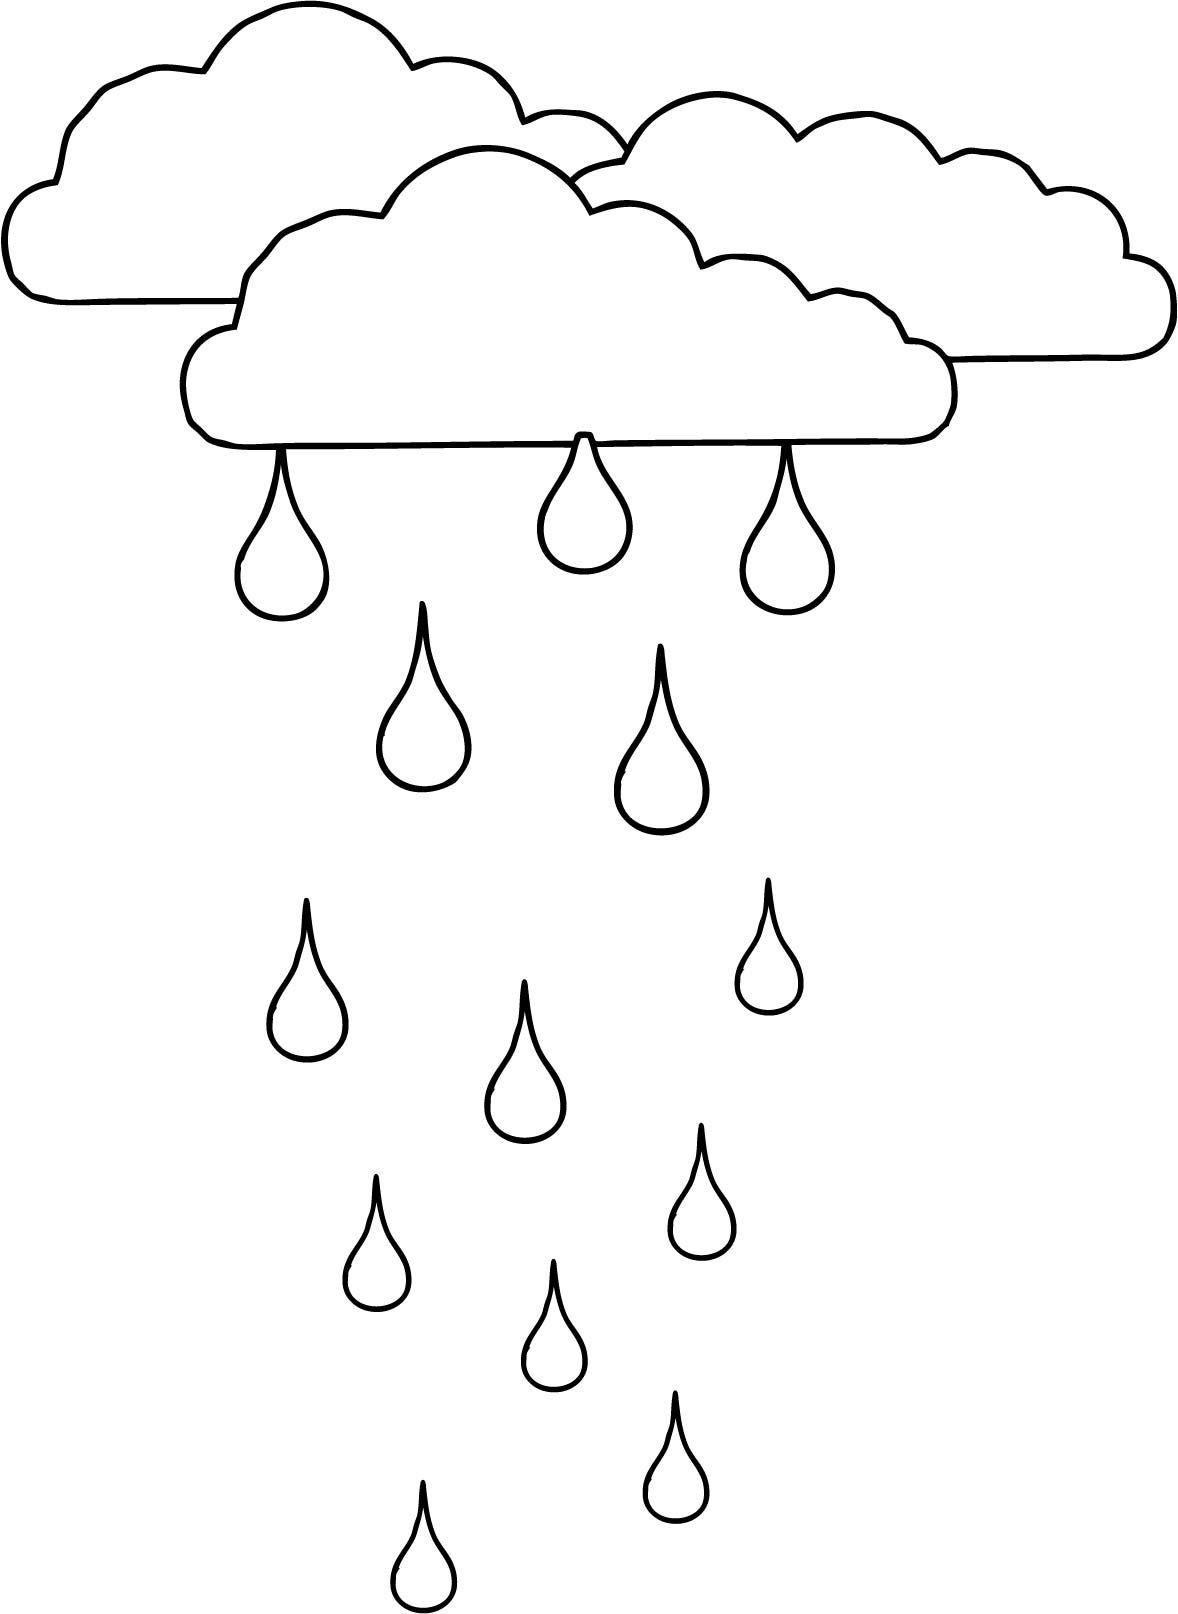 Nice Clouds Rain Coloring Page Coloring Pages Inspirational Coloring Pages Frog Coloring Pages